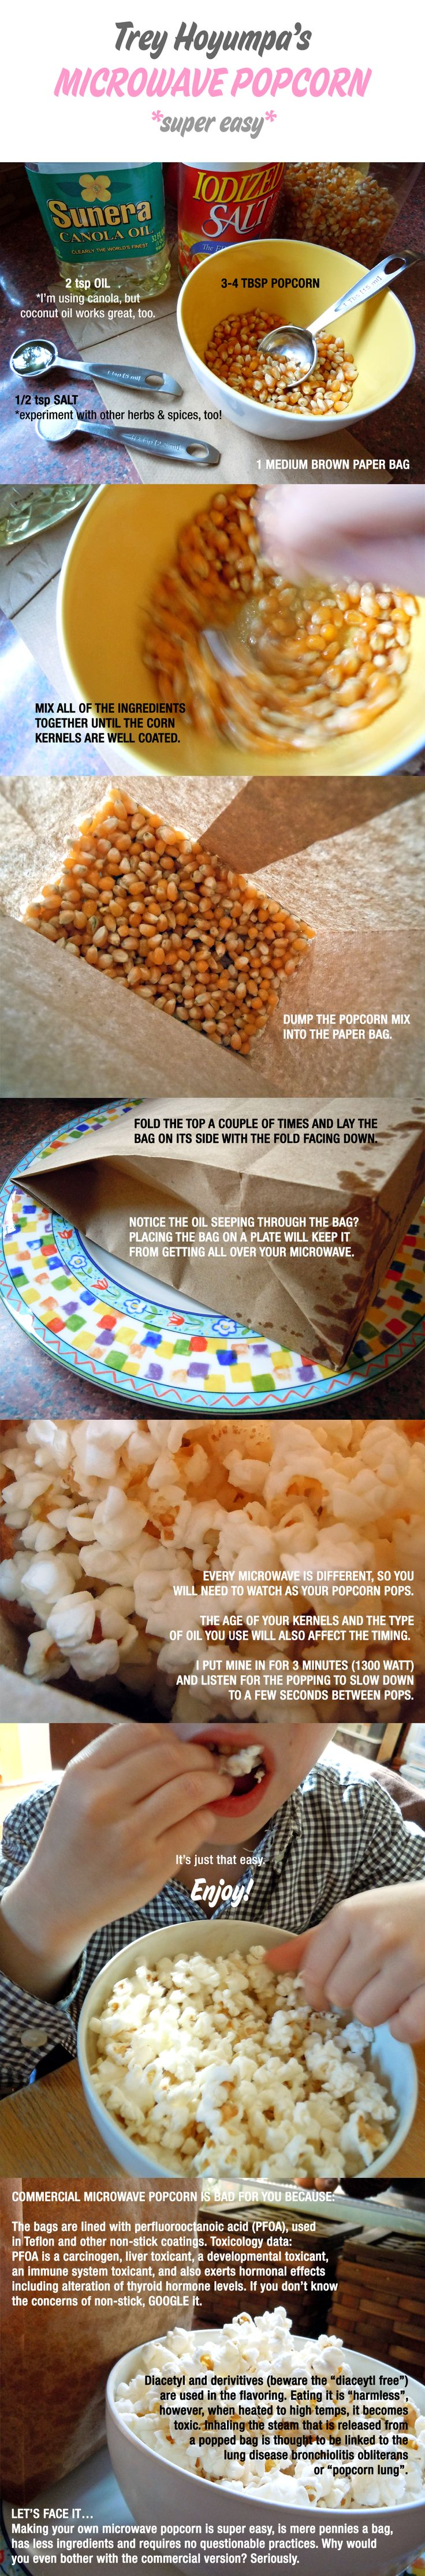 Homemade microwave popcorn. Gonna have to try this!